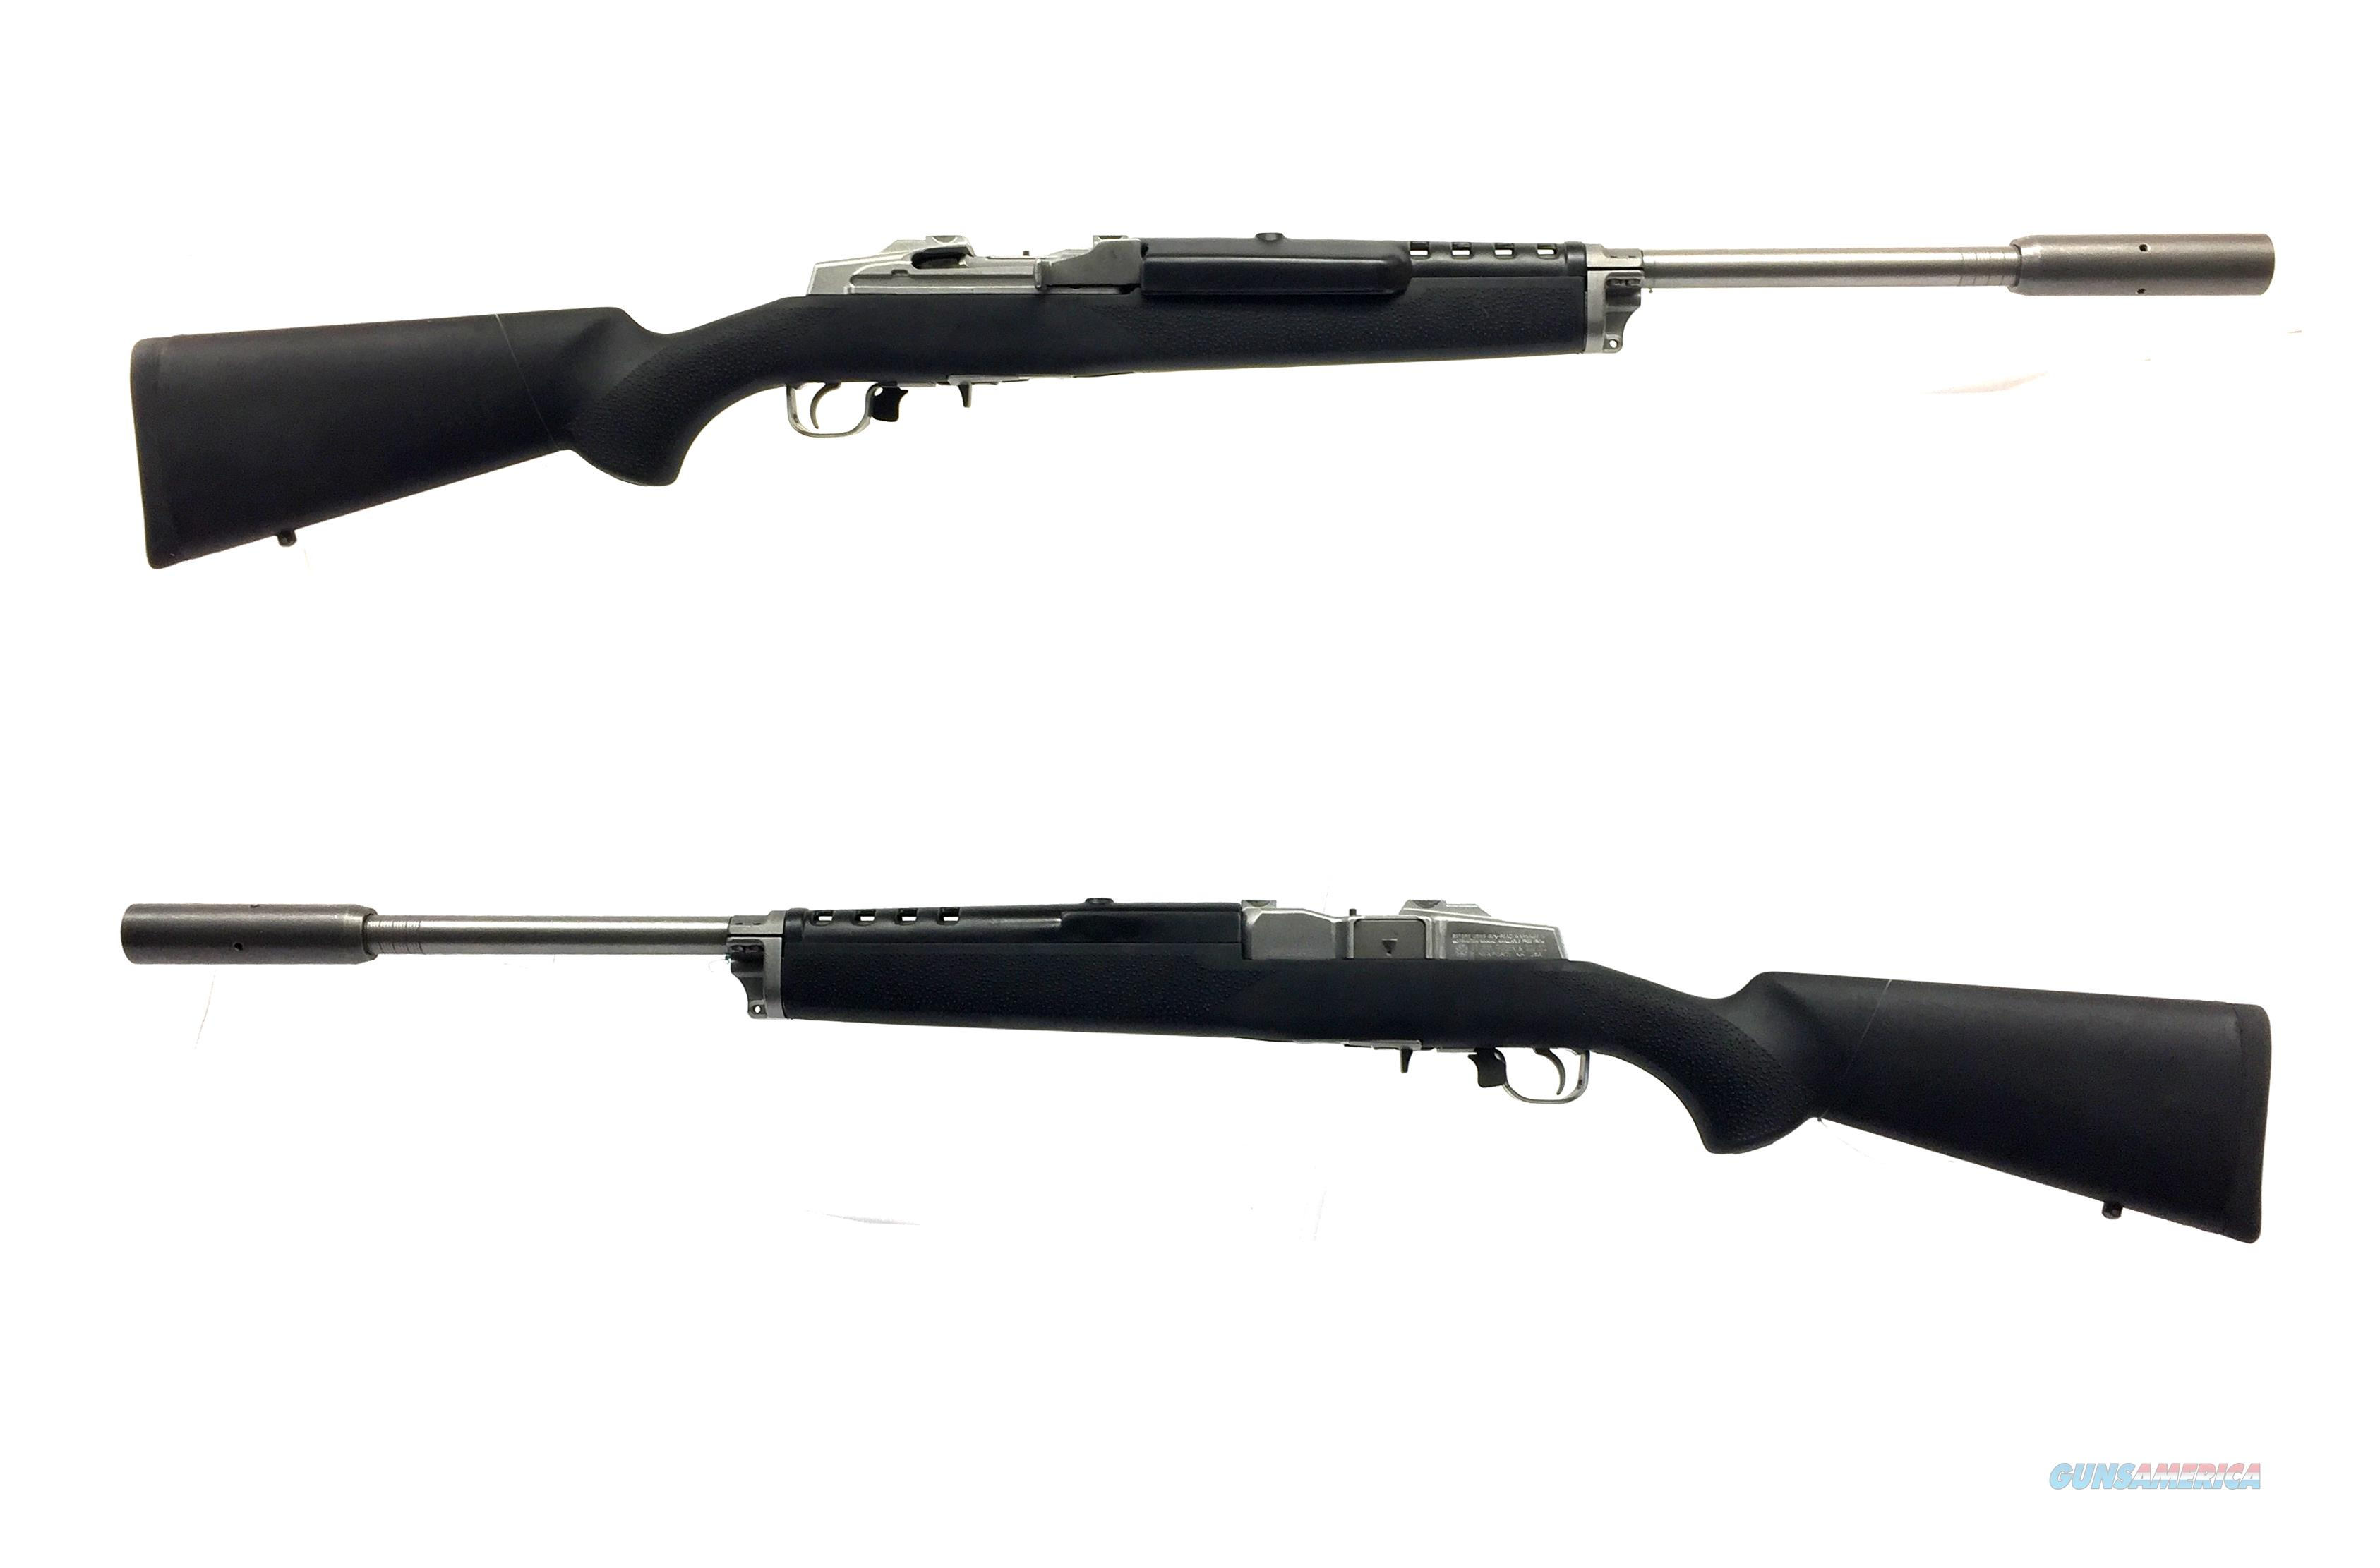 Ruger Mini-14 Target Rifle W/ Hogue Molded Stock  Guns > Rifles > Ruger Rifles > Mini-14 Type